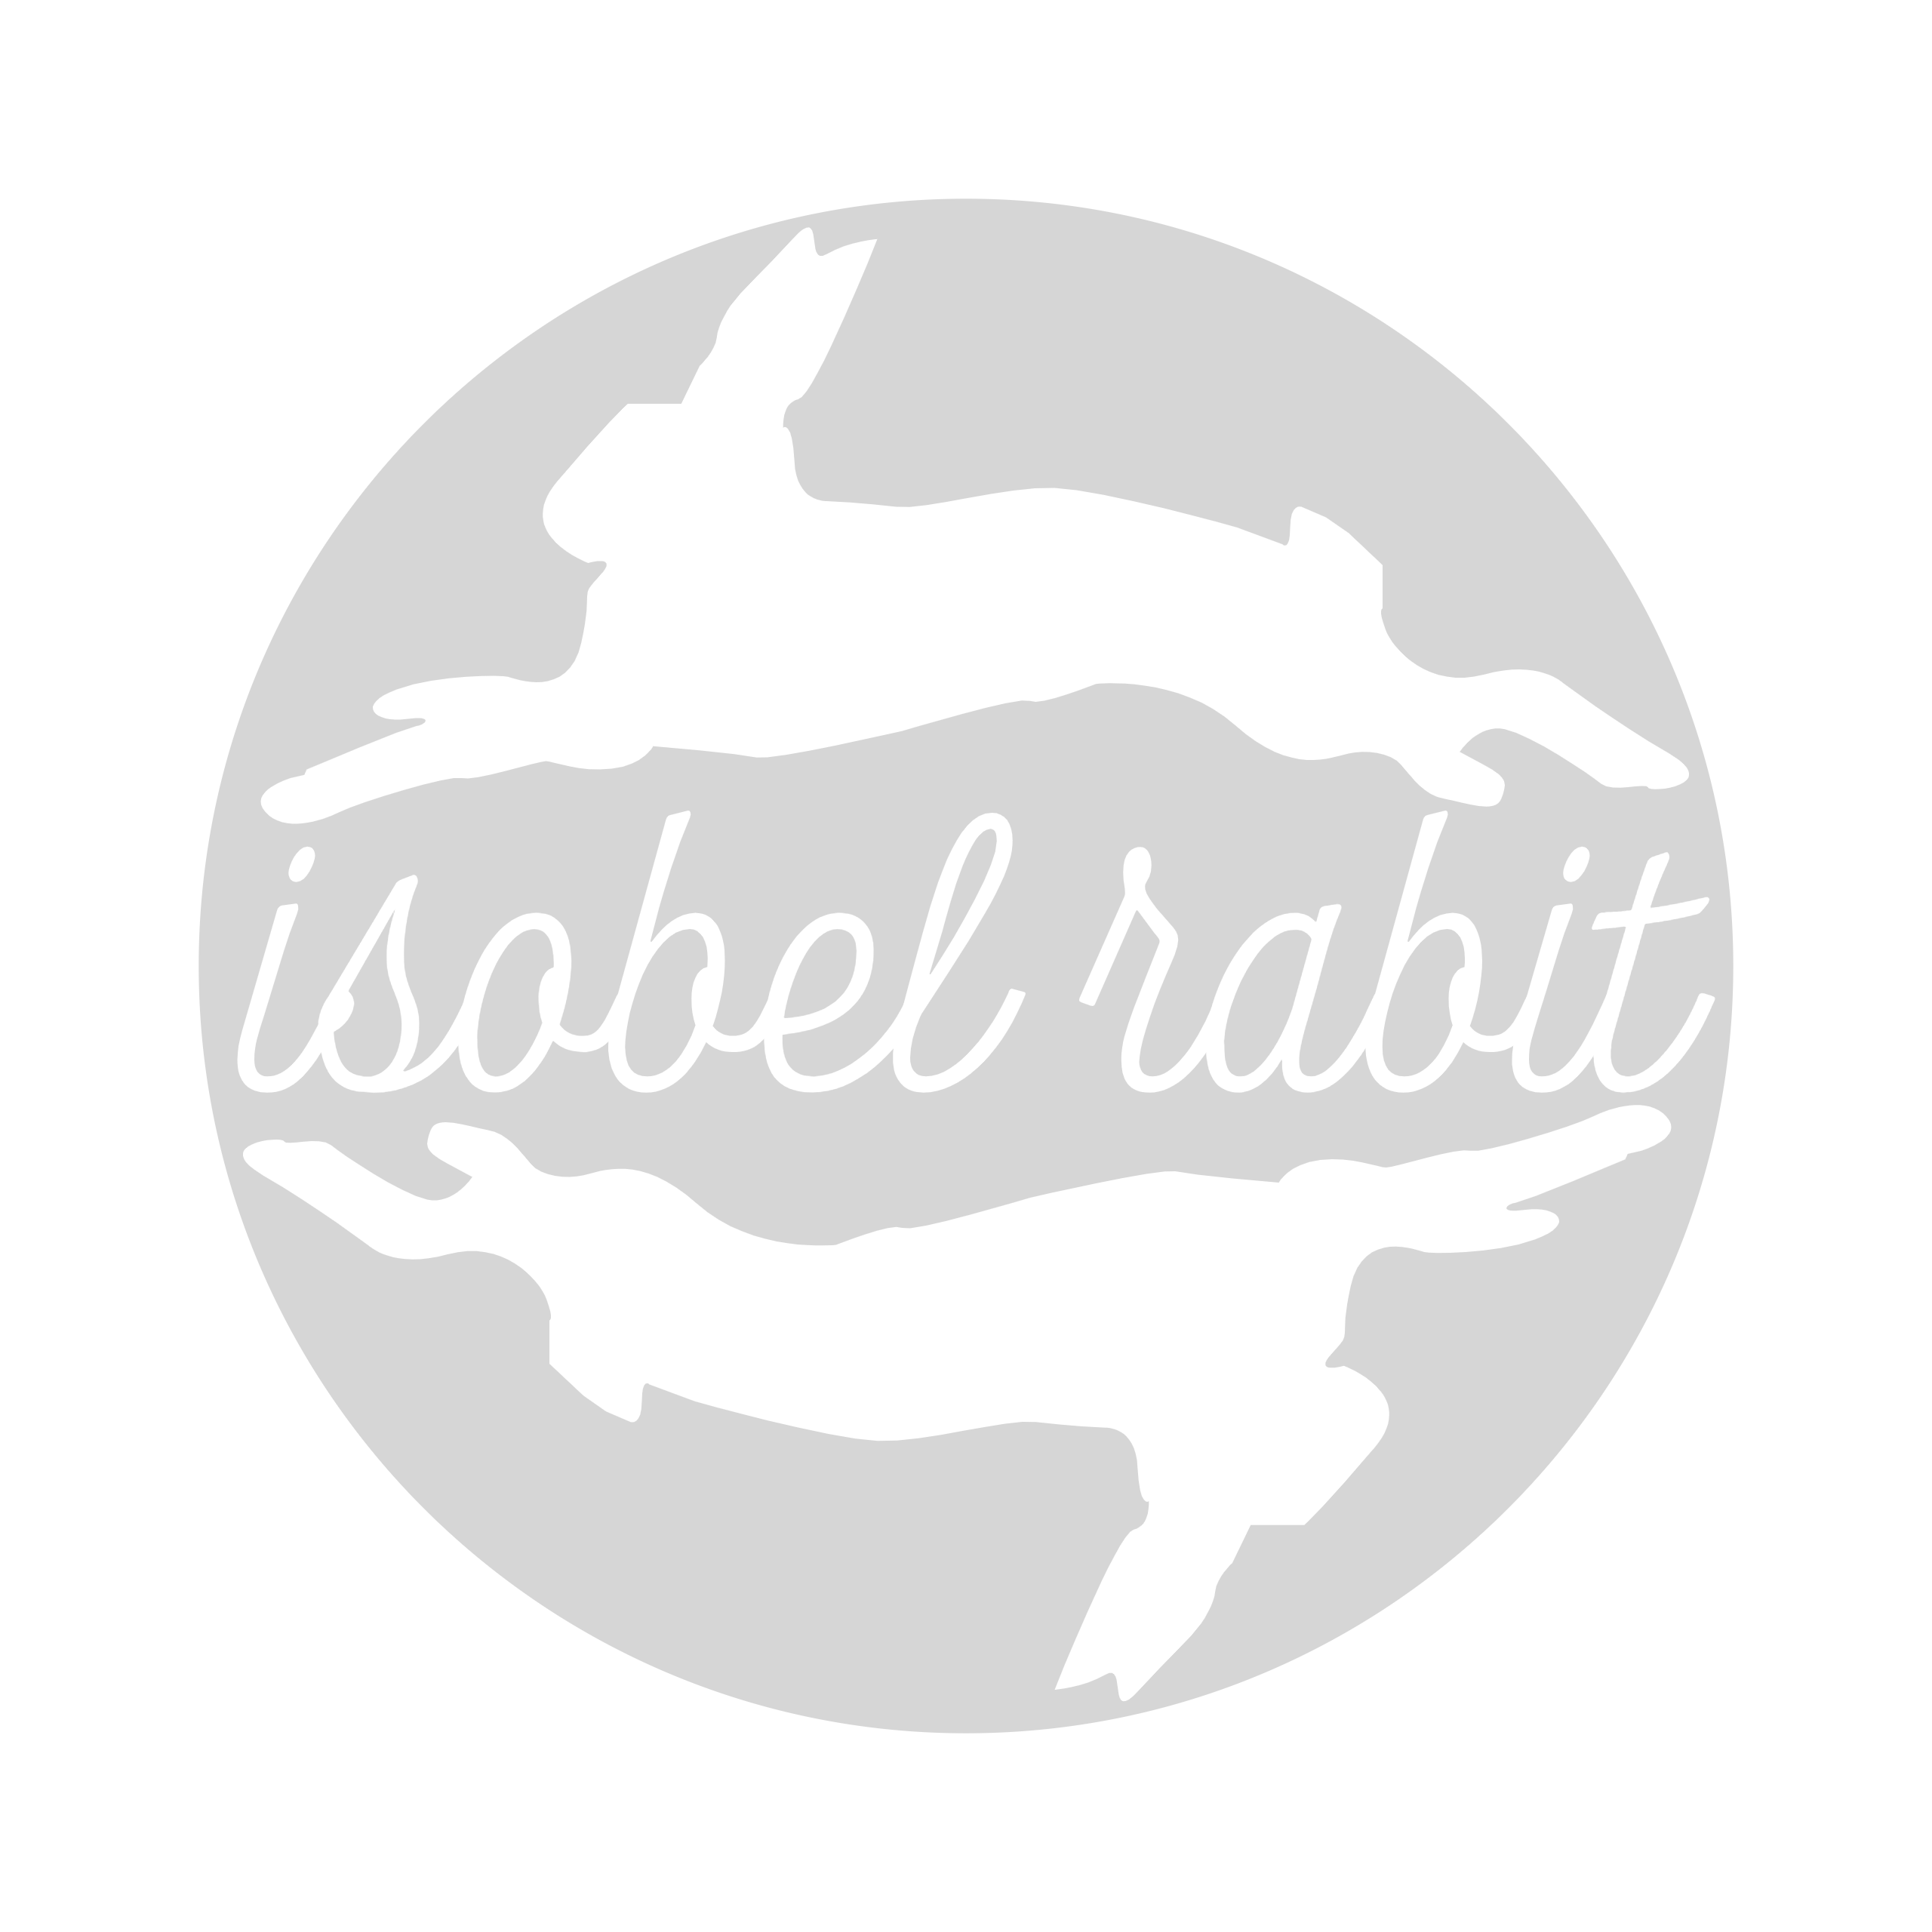 isobel rabit